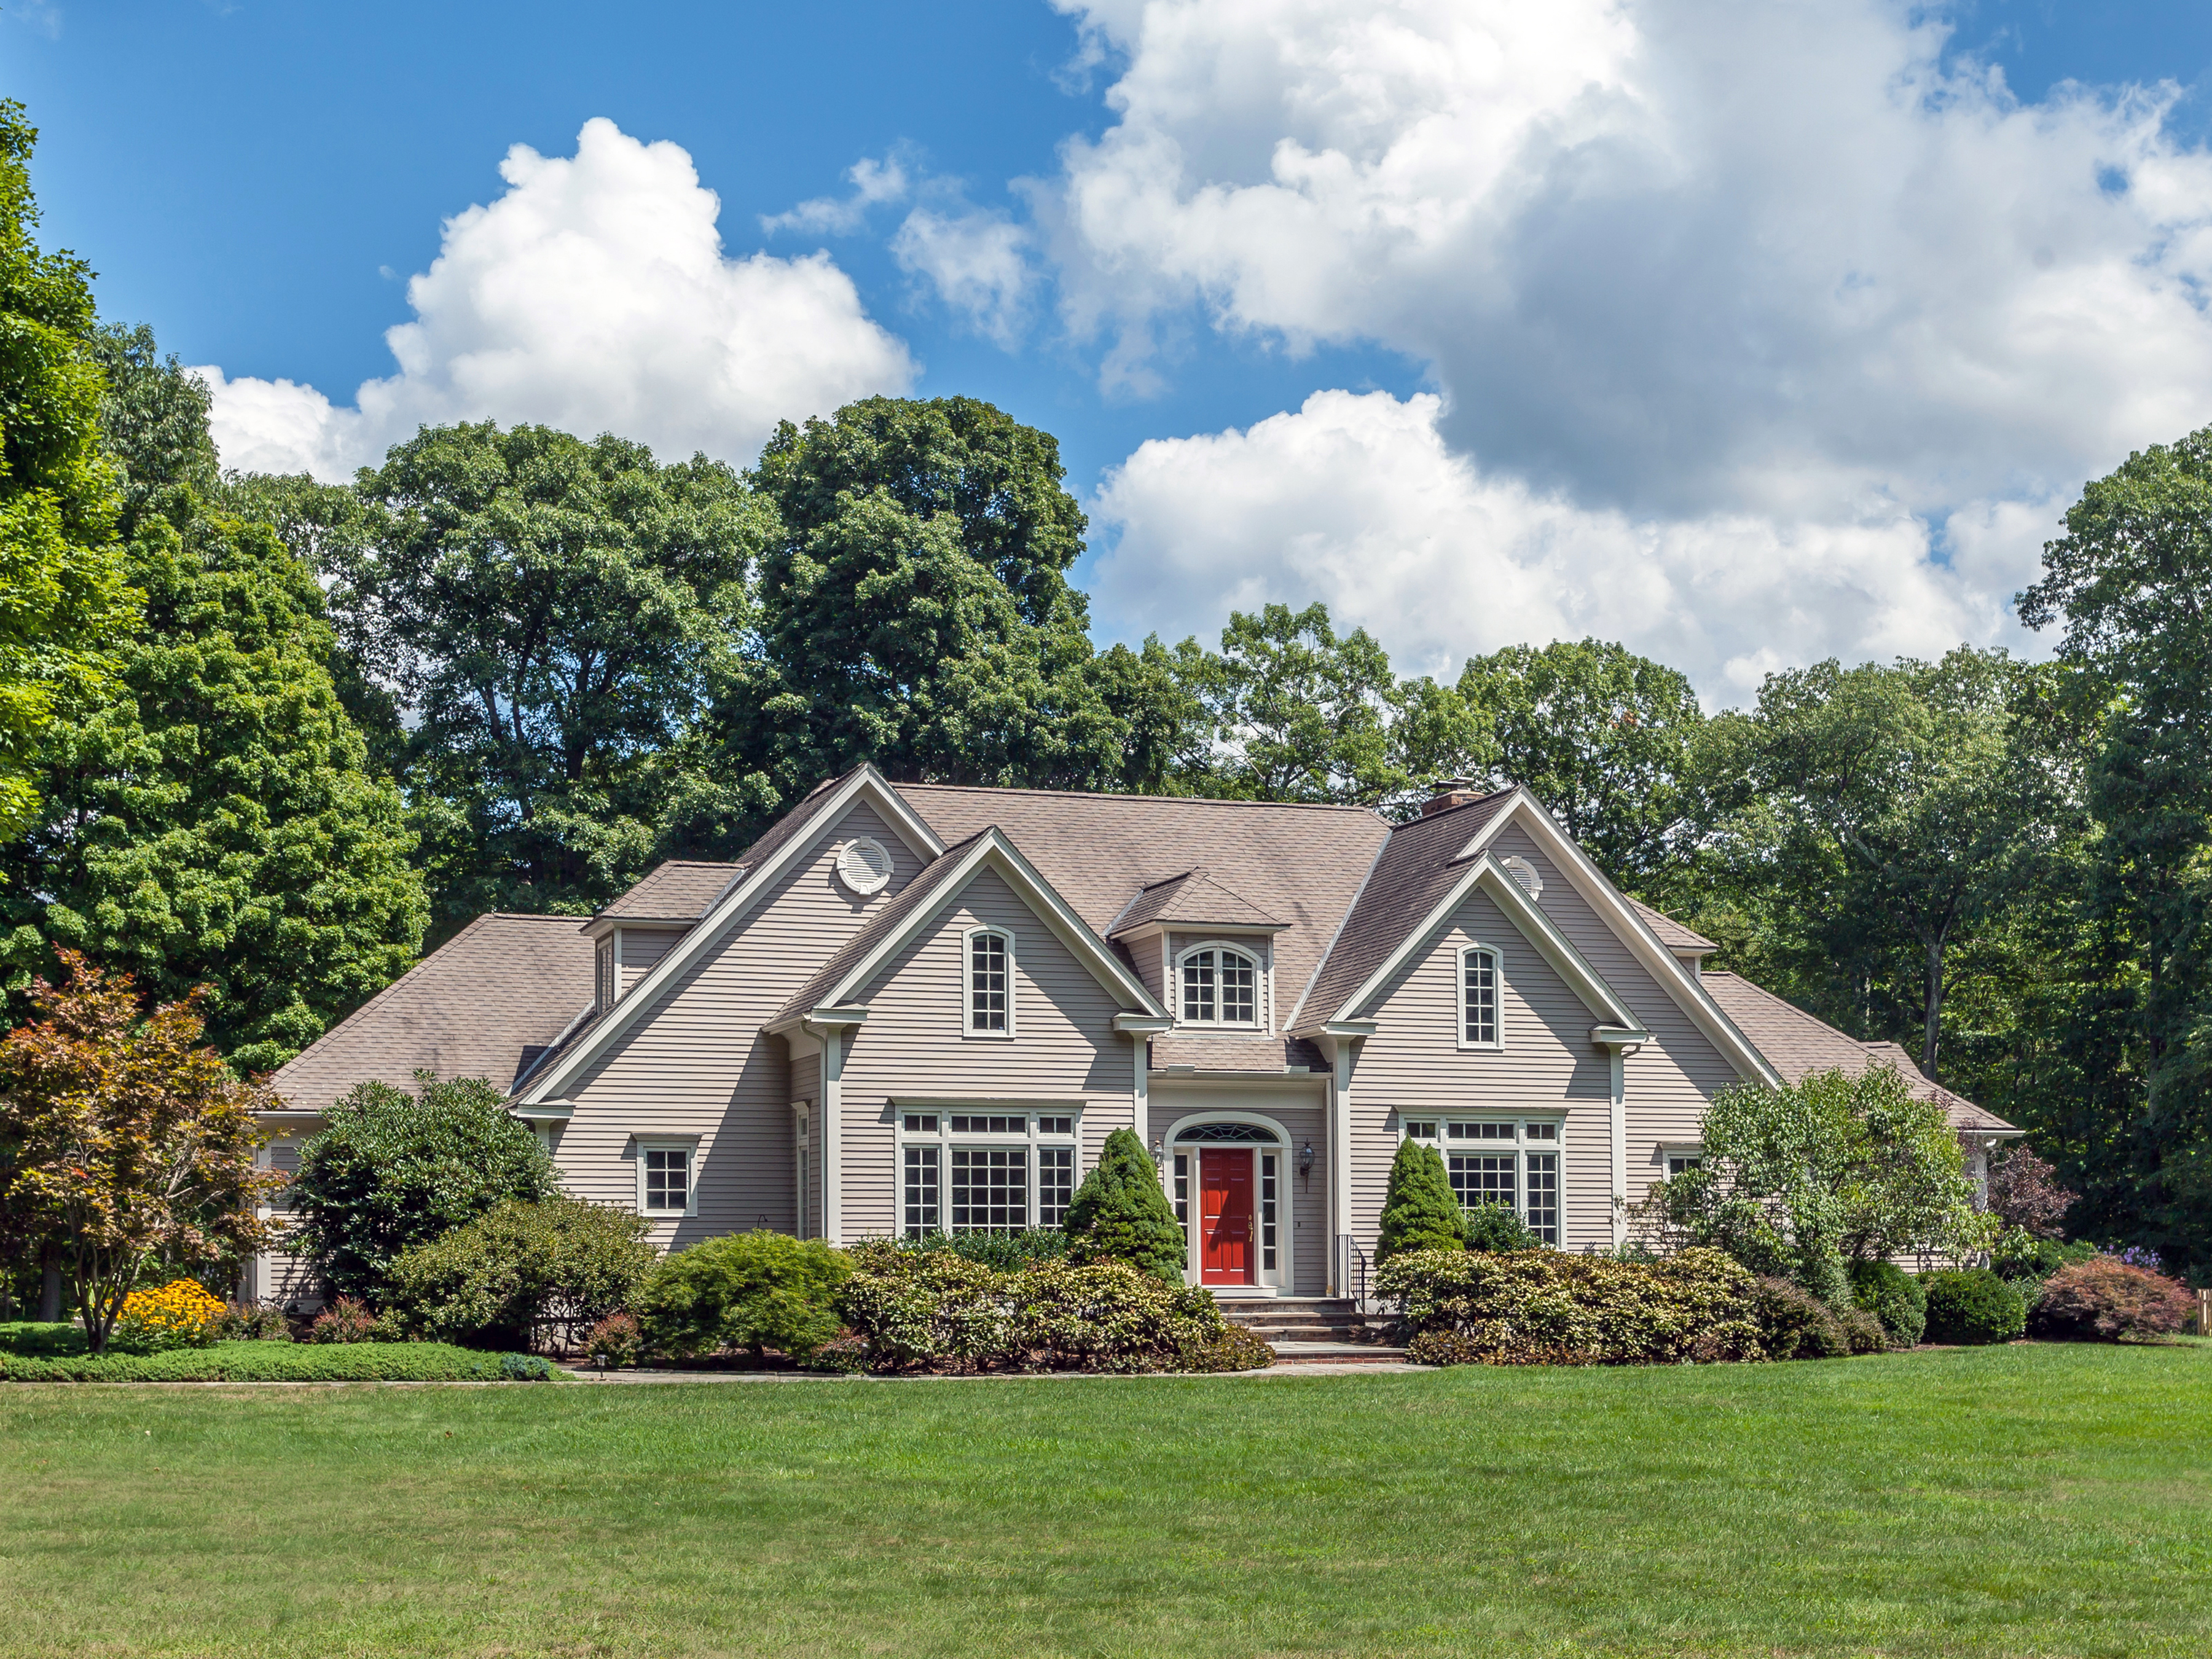 Single Family Home for Sale at French Country Home 128 Skyline Ridge Rd Bridgewater, Connecticut, 06752 United States